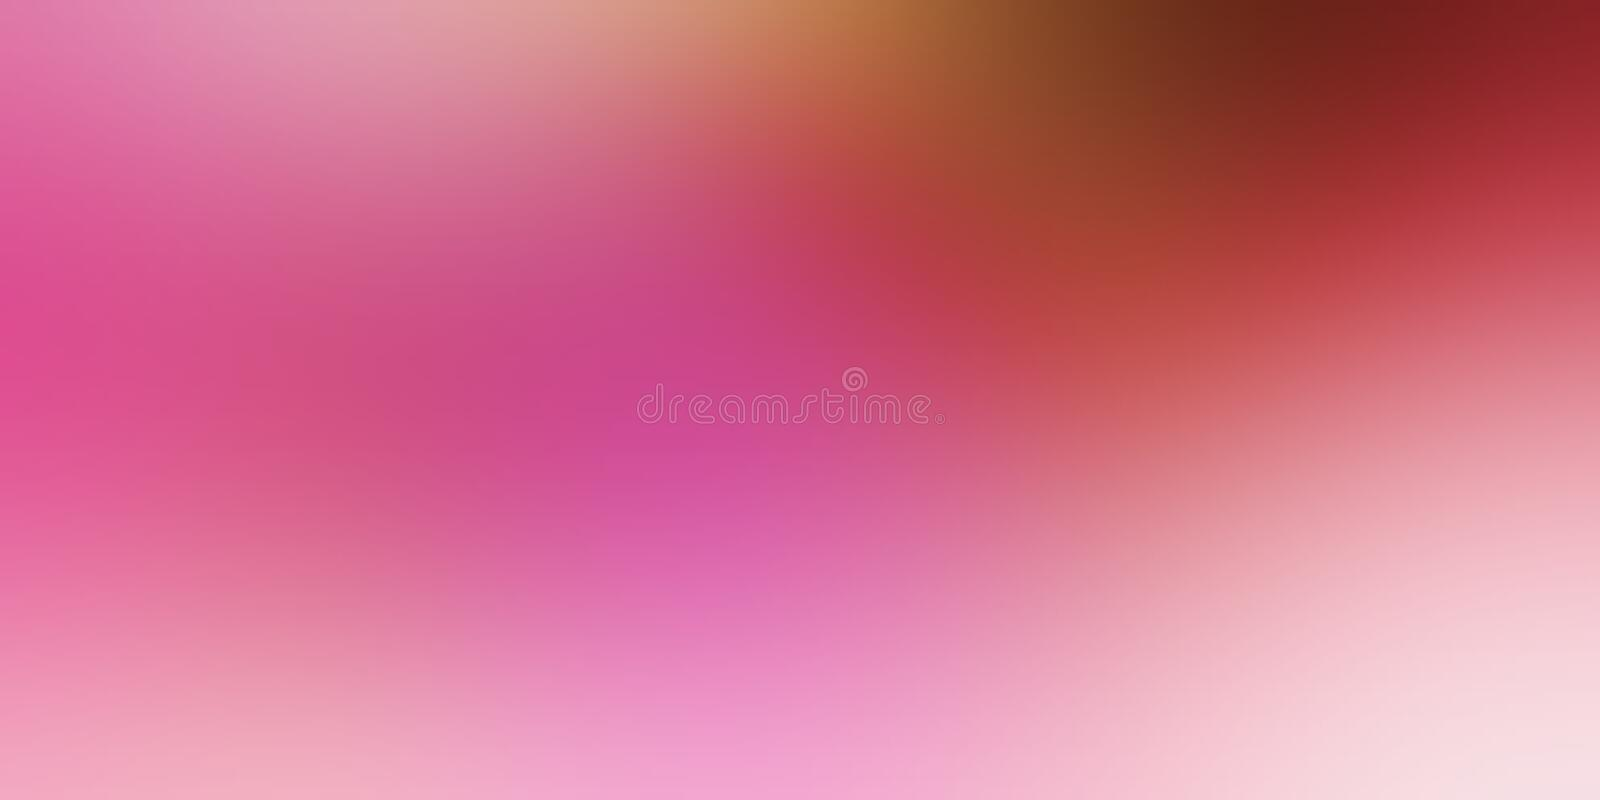 Colorful blur abstract background vector design, colorful blurred shaded background, vivid color vector illustration. royalty free stock photography